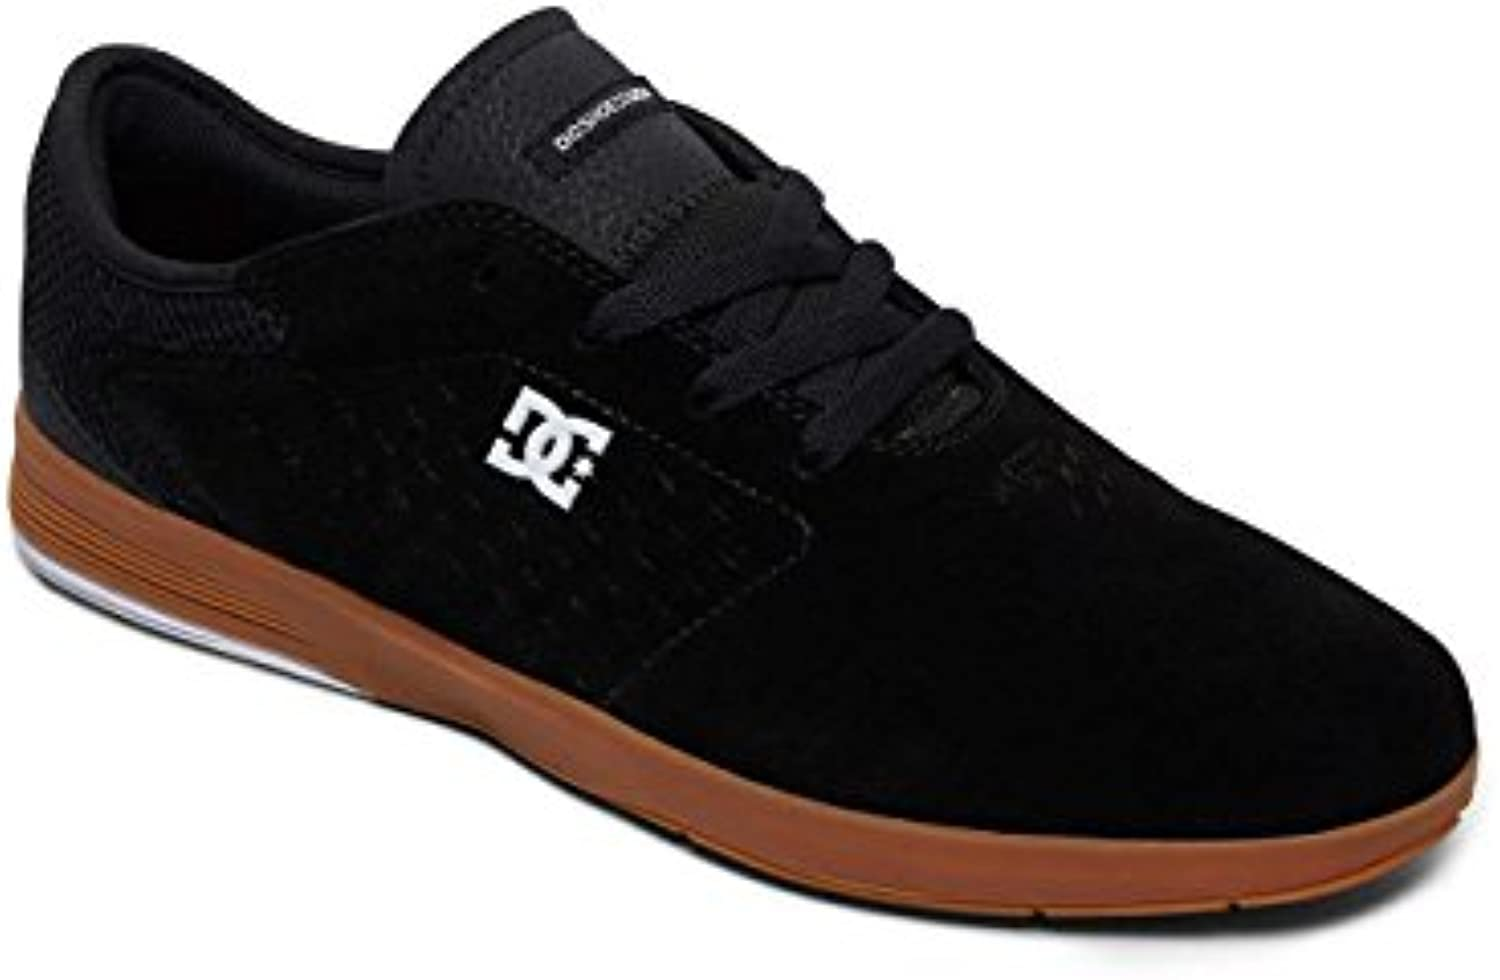 DC Shoes New Jack S - Skate Shoes - Zapatillas de Skate - Hombre - EU 38.5  -